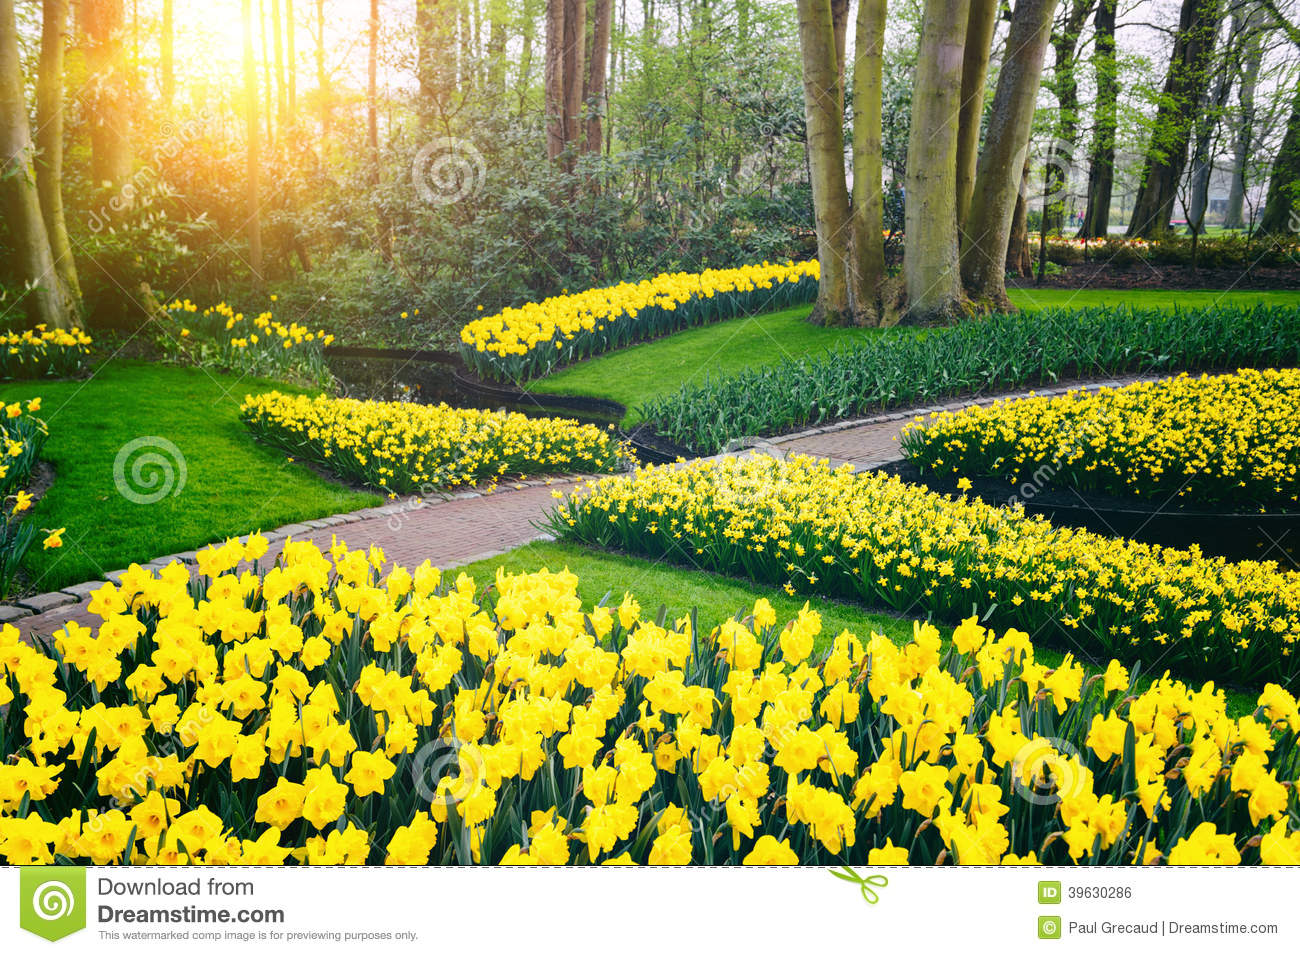 paysage de ressort avec les jonquilles jaunes jardin de keukenhof photo stock image 39630286. Black Bedroom Furniture Sets. Home Design Ideas